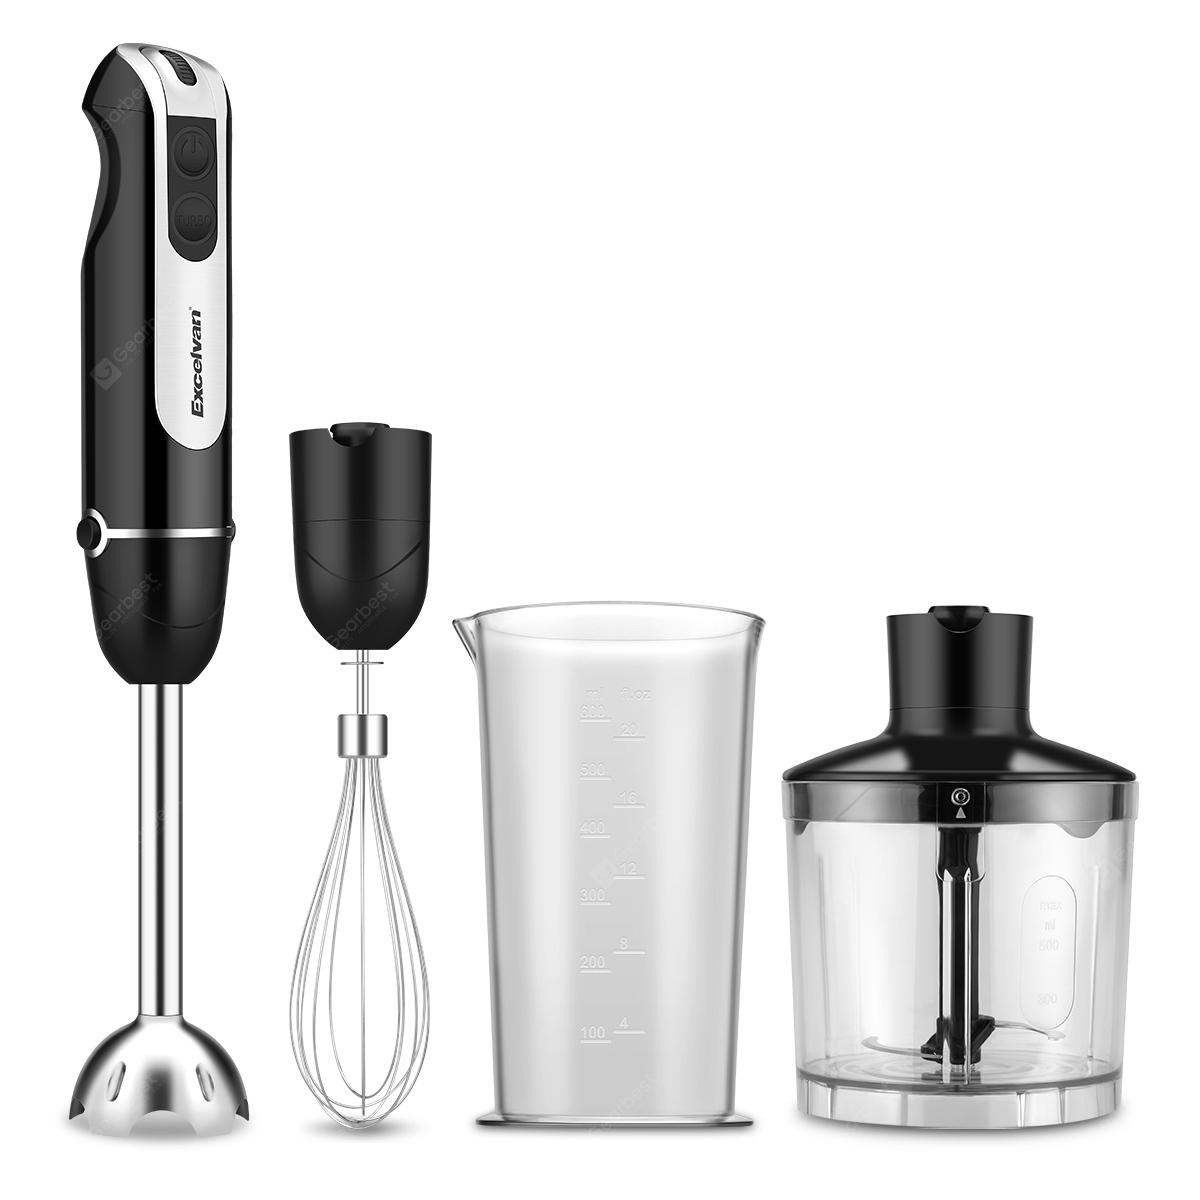 Excelvan Powerful 3-in-1 600W DC Motor Hand Blender with 500ml Chopper 600ml Beaker and Whisk Attachments Two Speed Blending Chopping Baby Food Stainless Steel Black - EU Plug